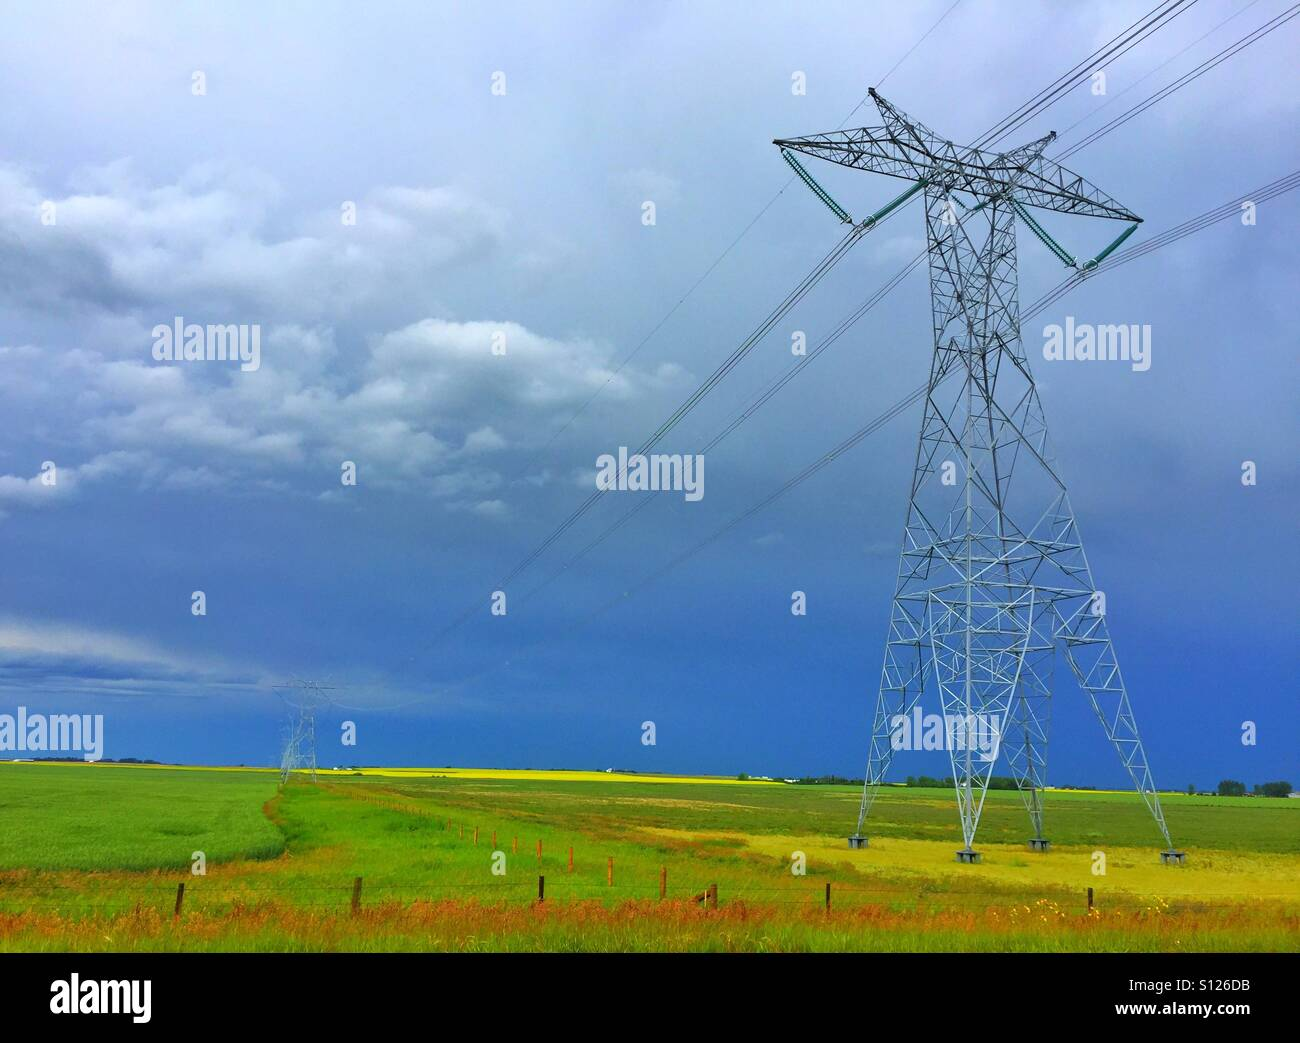 Dark skies, high tension power line and a canola field - Stock Image